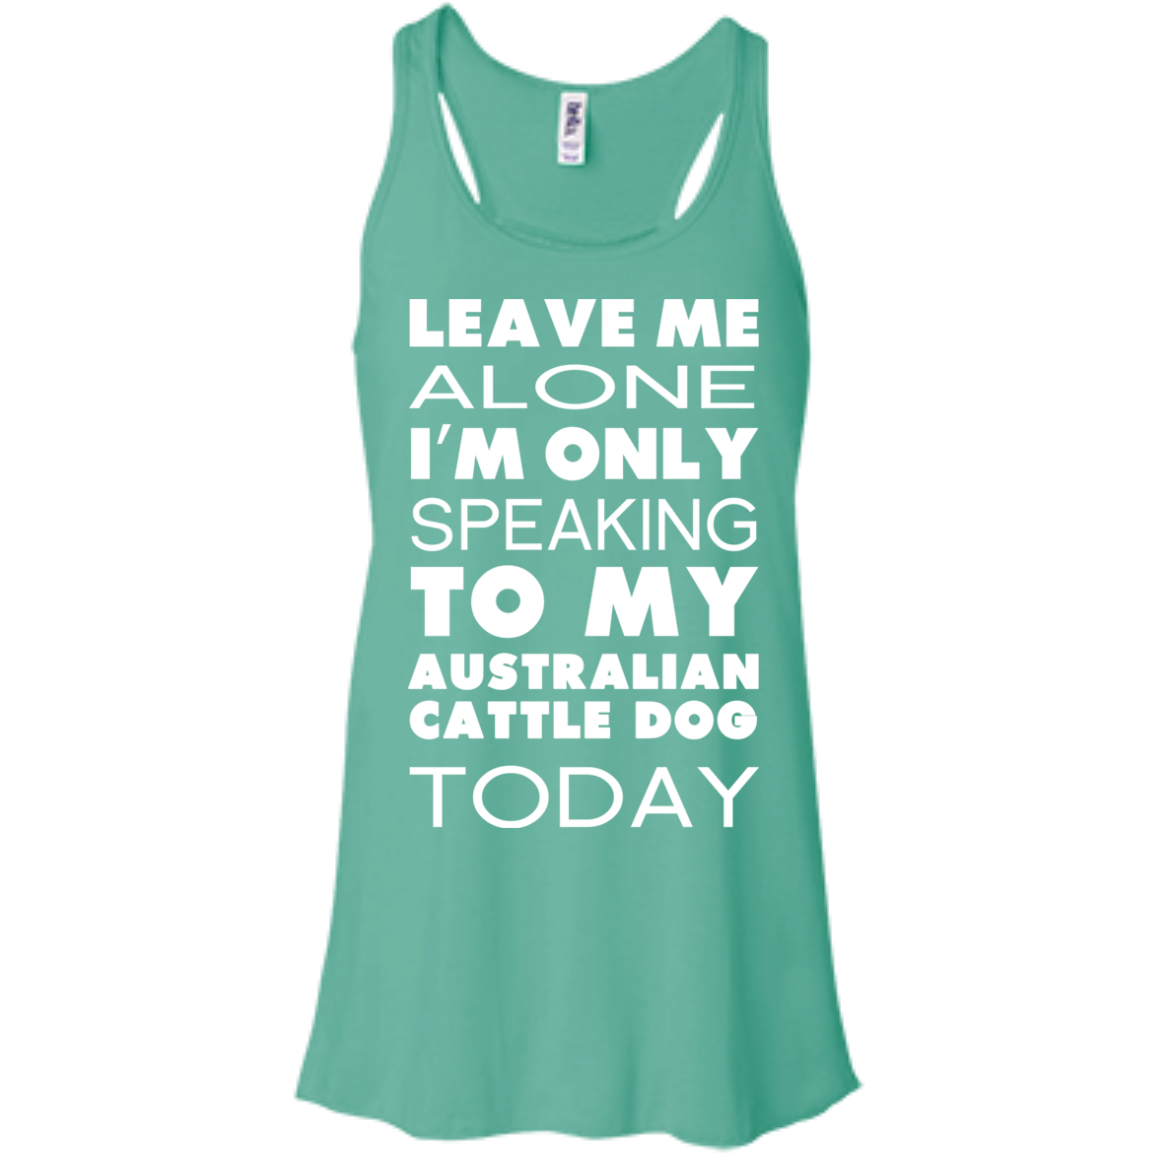 Leave Me Alone Im Only Speaking To My Australian Cattle Dog Today Flowy Racerback Tanks